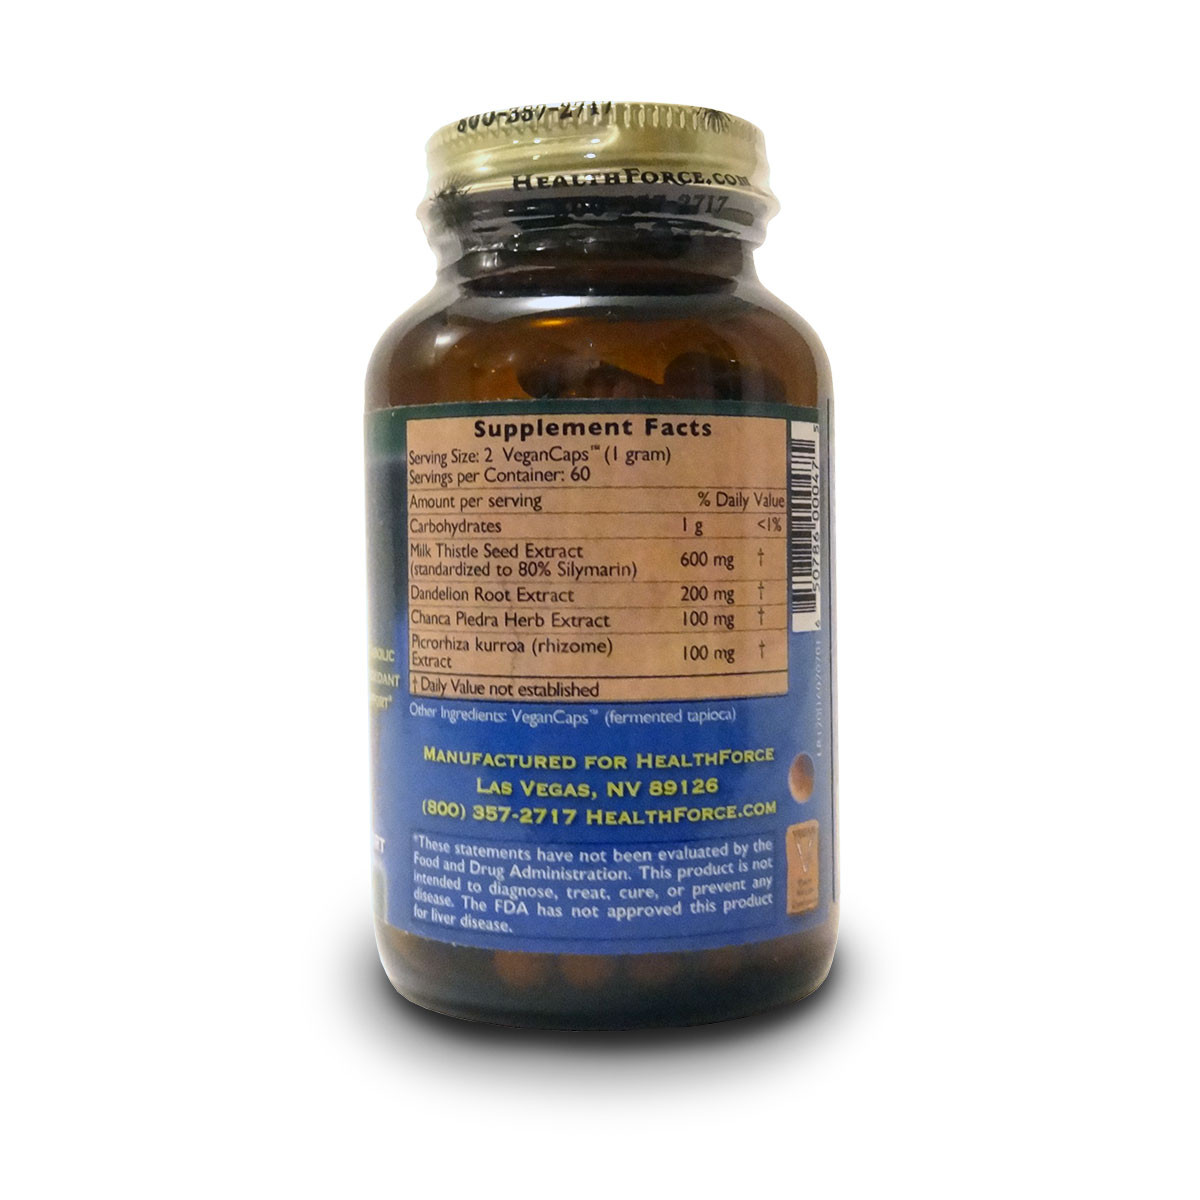 Supplement Facts of a bottle of HealthForce Nutritionals Liver Rescue 5+ liver support capsules.